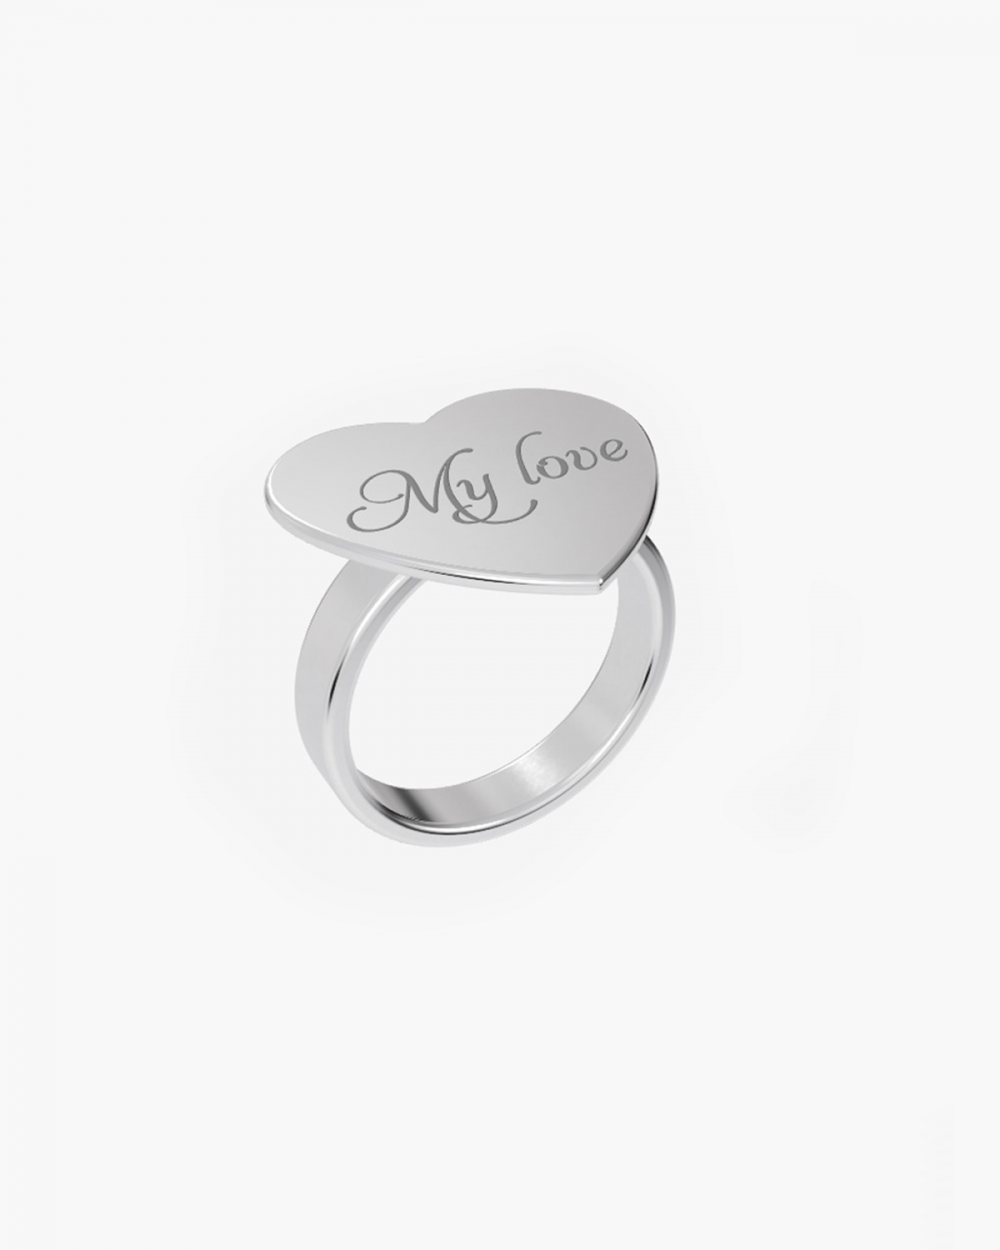 MYNOVE25 SMALL HEART PLATE RING 20 MM NOVE25